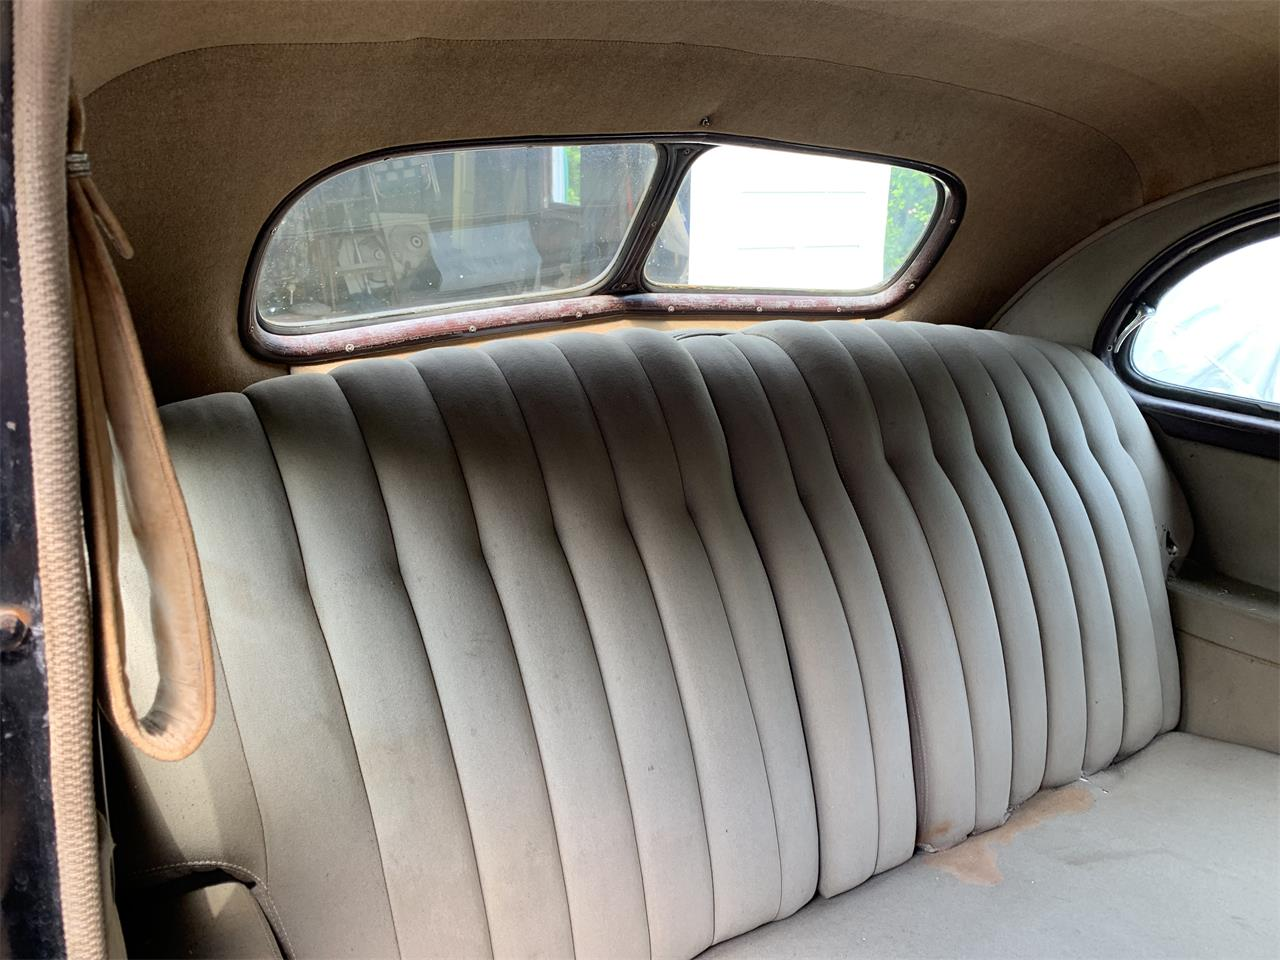 Large Picture of 1938 Cadillac Series 60 located in Providence Rhode Island - $17,900.00 Offered by a Private Seller - PZ9J